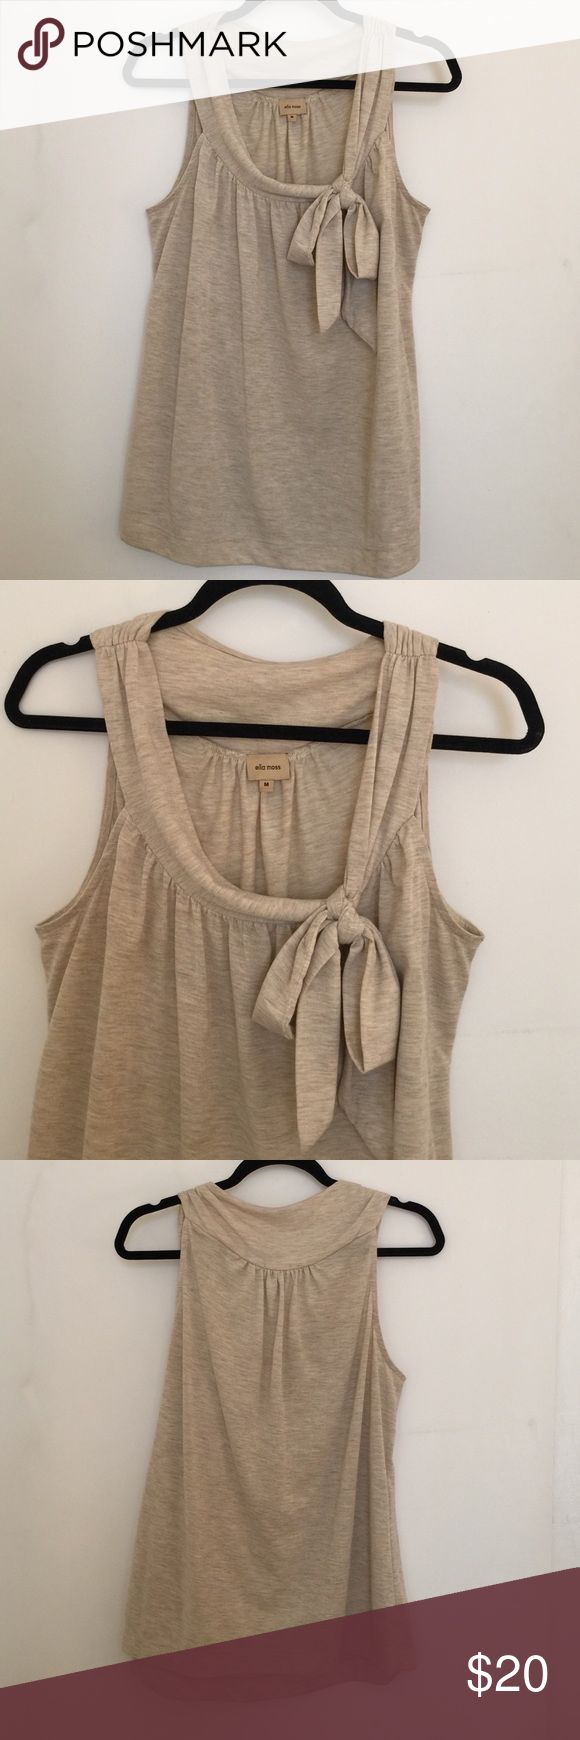 Anthropologie Sleeveless Bow Tie Blouse Charming blouse with elegant drapey neckline and bow. Loose fit. Material is soft heathered fabric in creamy oatmeal. Shows some very minor wear at the armpit and hem. From Anthro brand Ella Moss. Anthropologie Tops Blouses